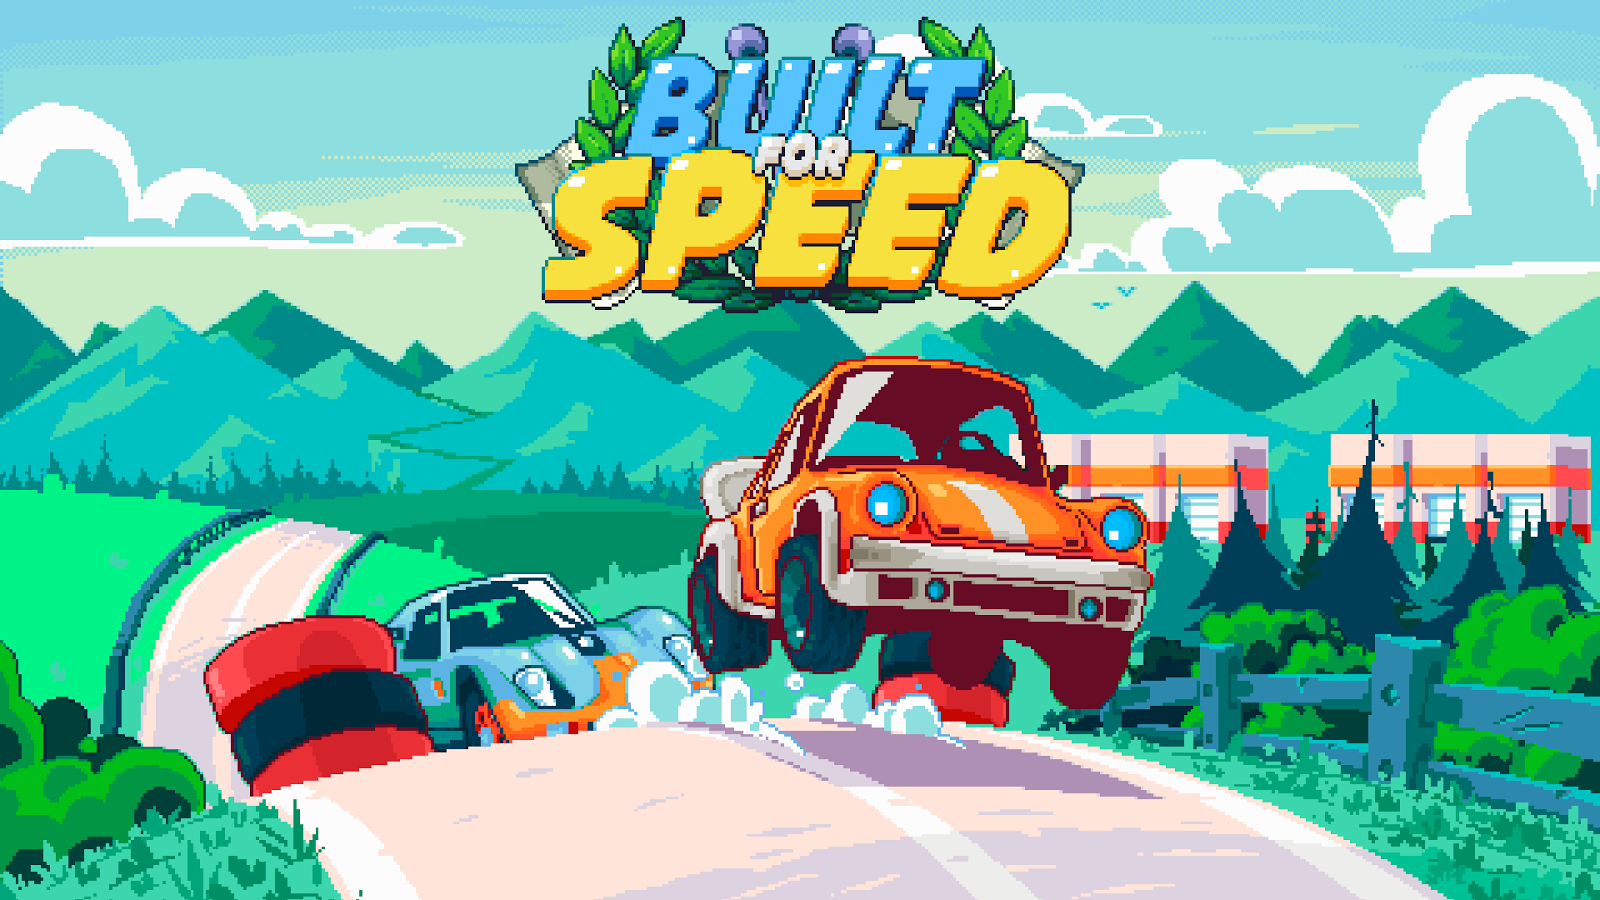 Built for Speed Screenshot 9